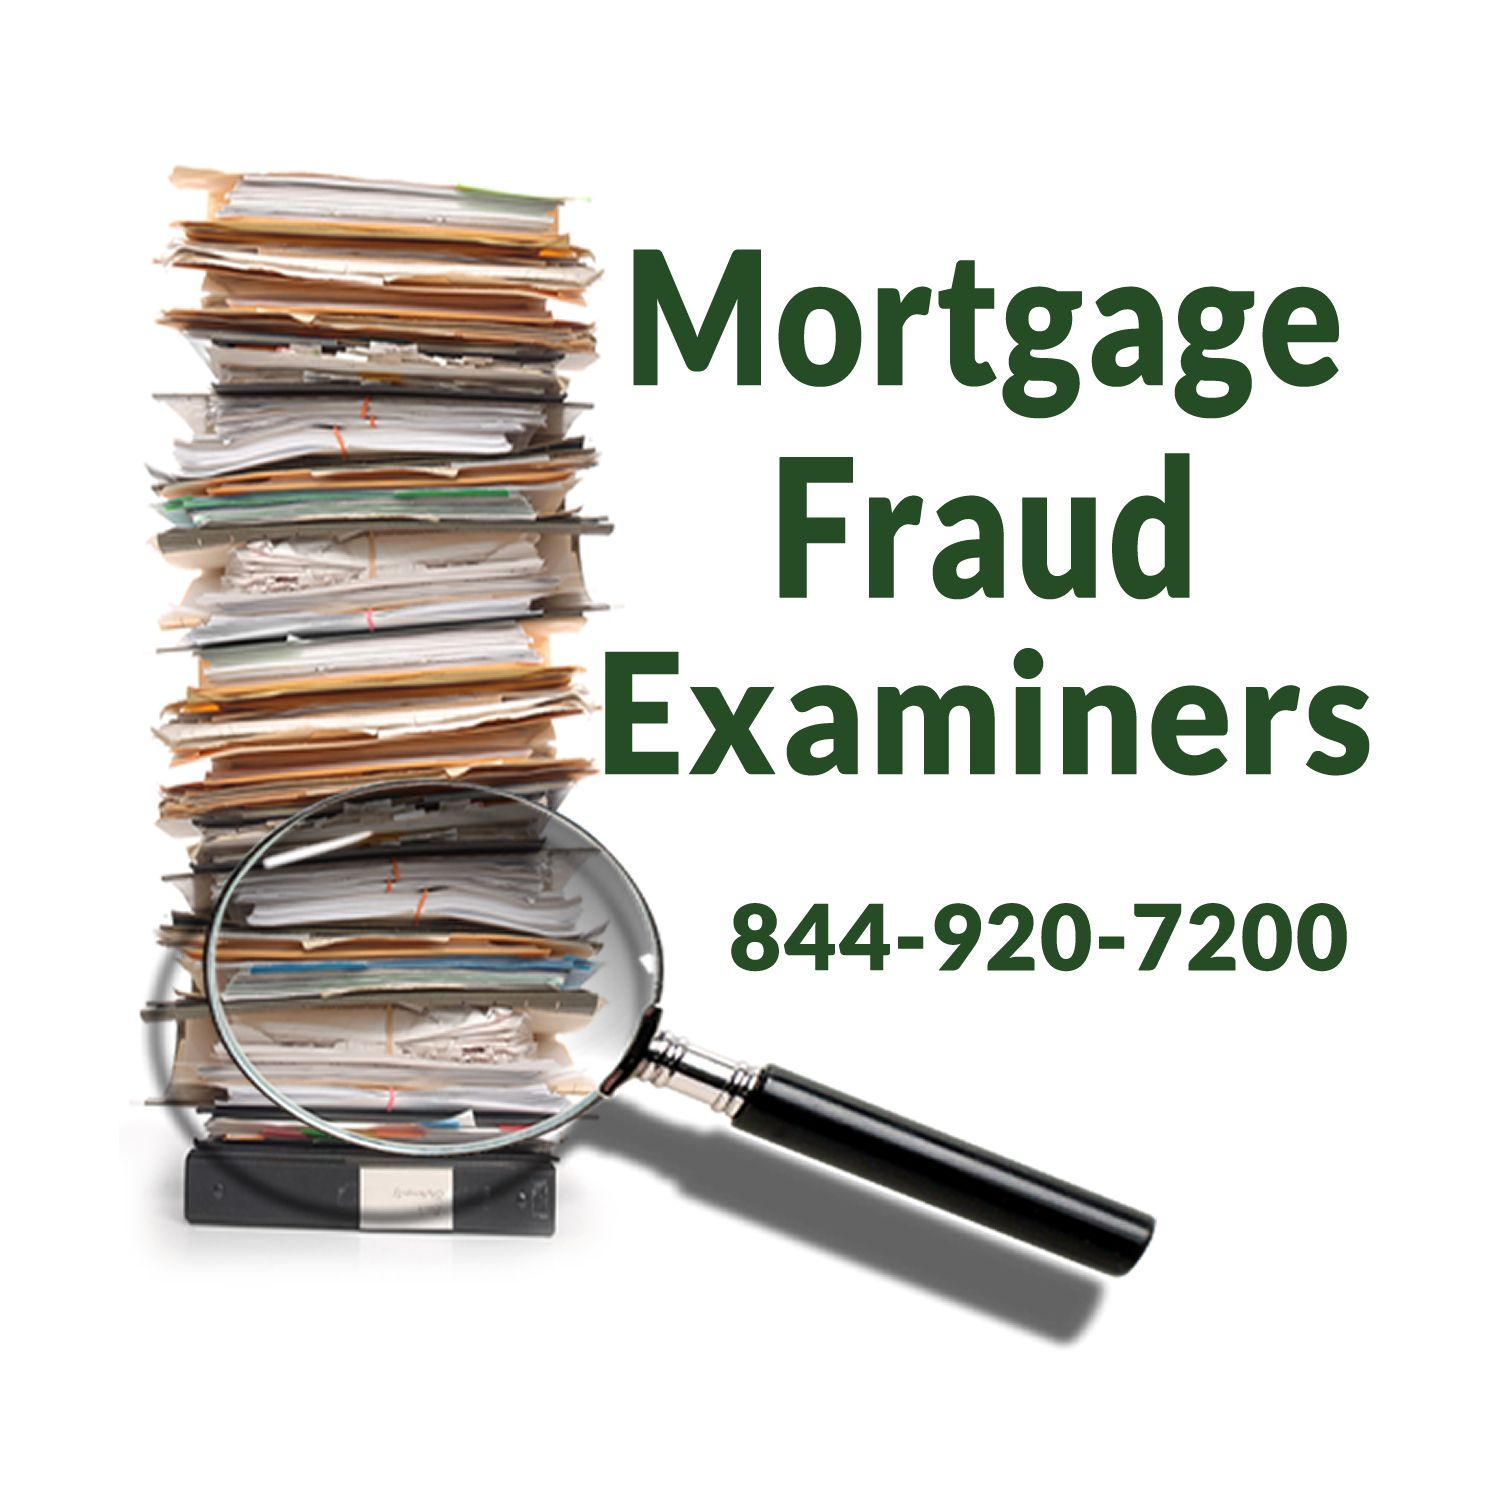 Mortgage Fraud Examiners